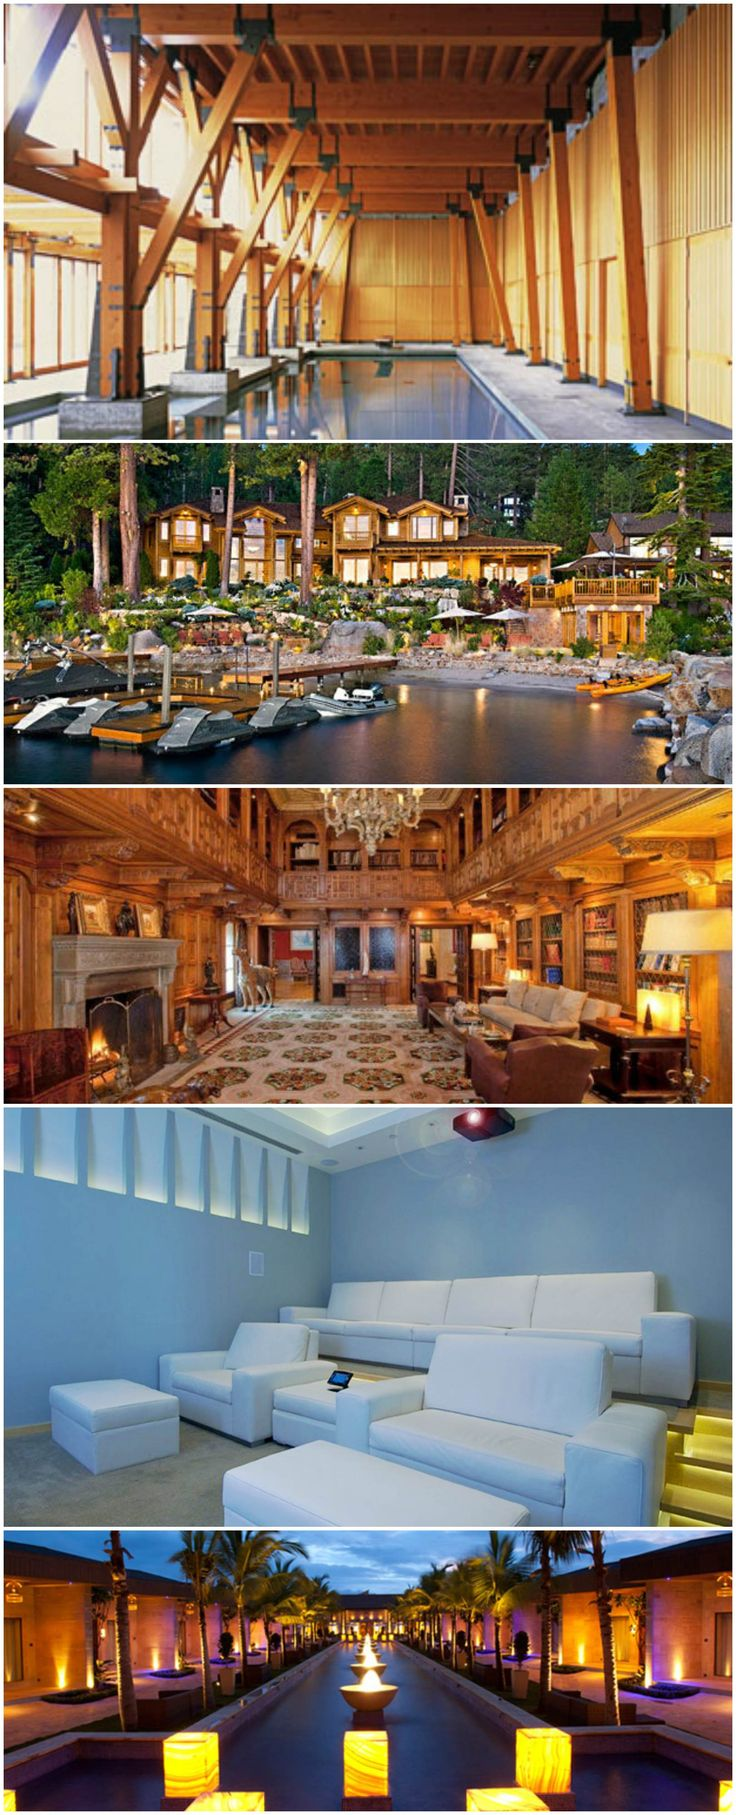 bill gates interior house. Bill Gates House Pictures  CelebrityHousePictures com Celebrity Mansions Pinterest gates and mansions